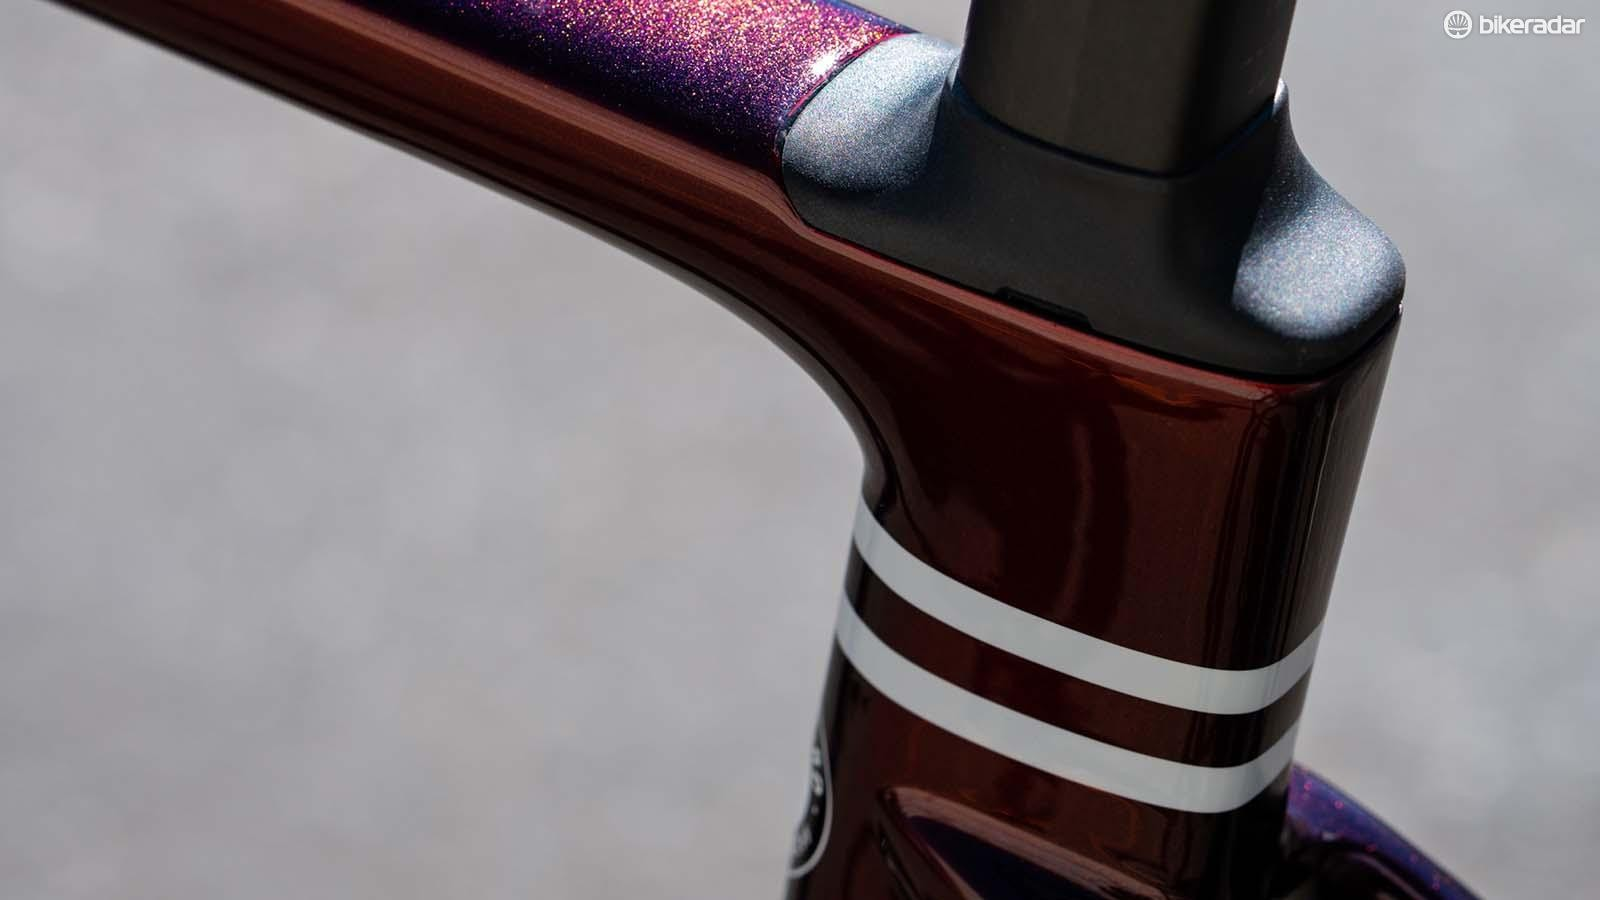 The S-Works Pavé seatpost flexes and moves for extra shock absorption